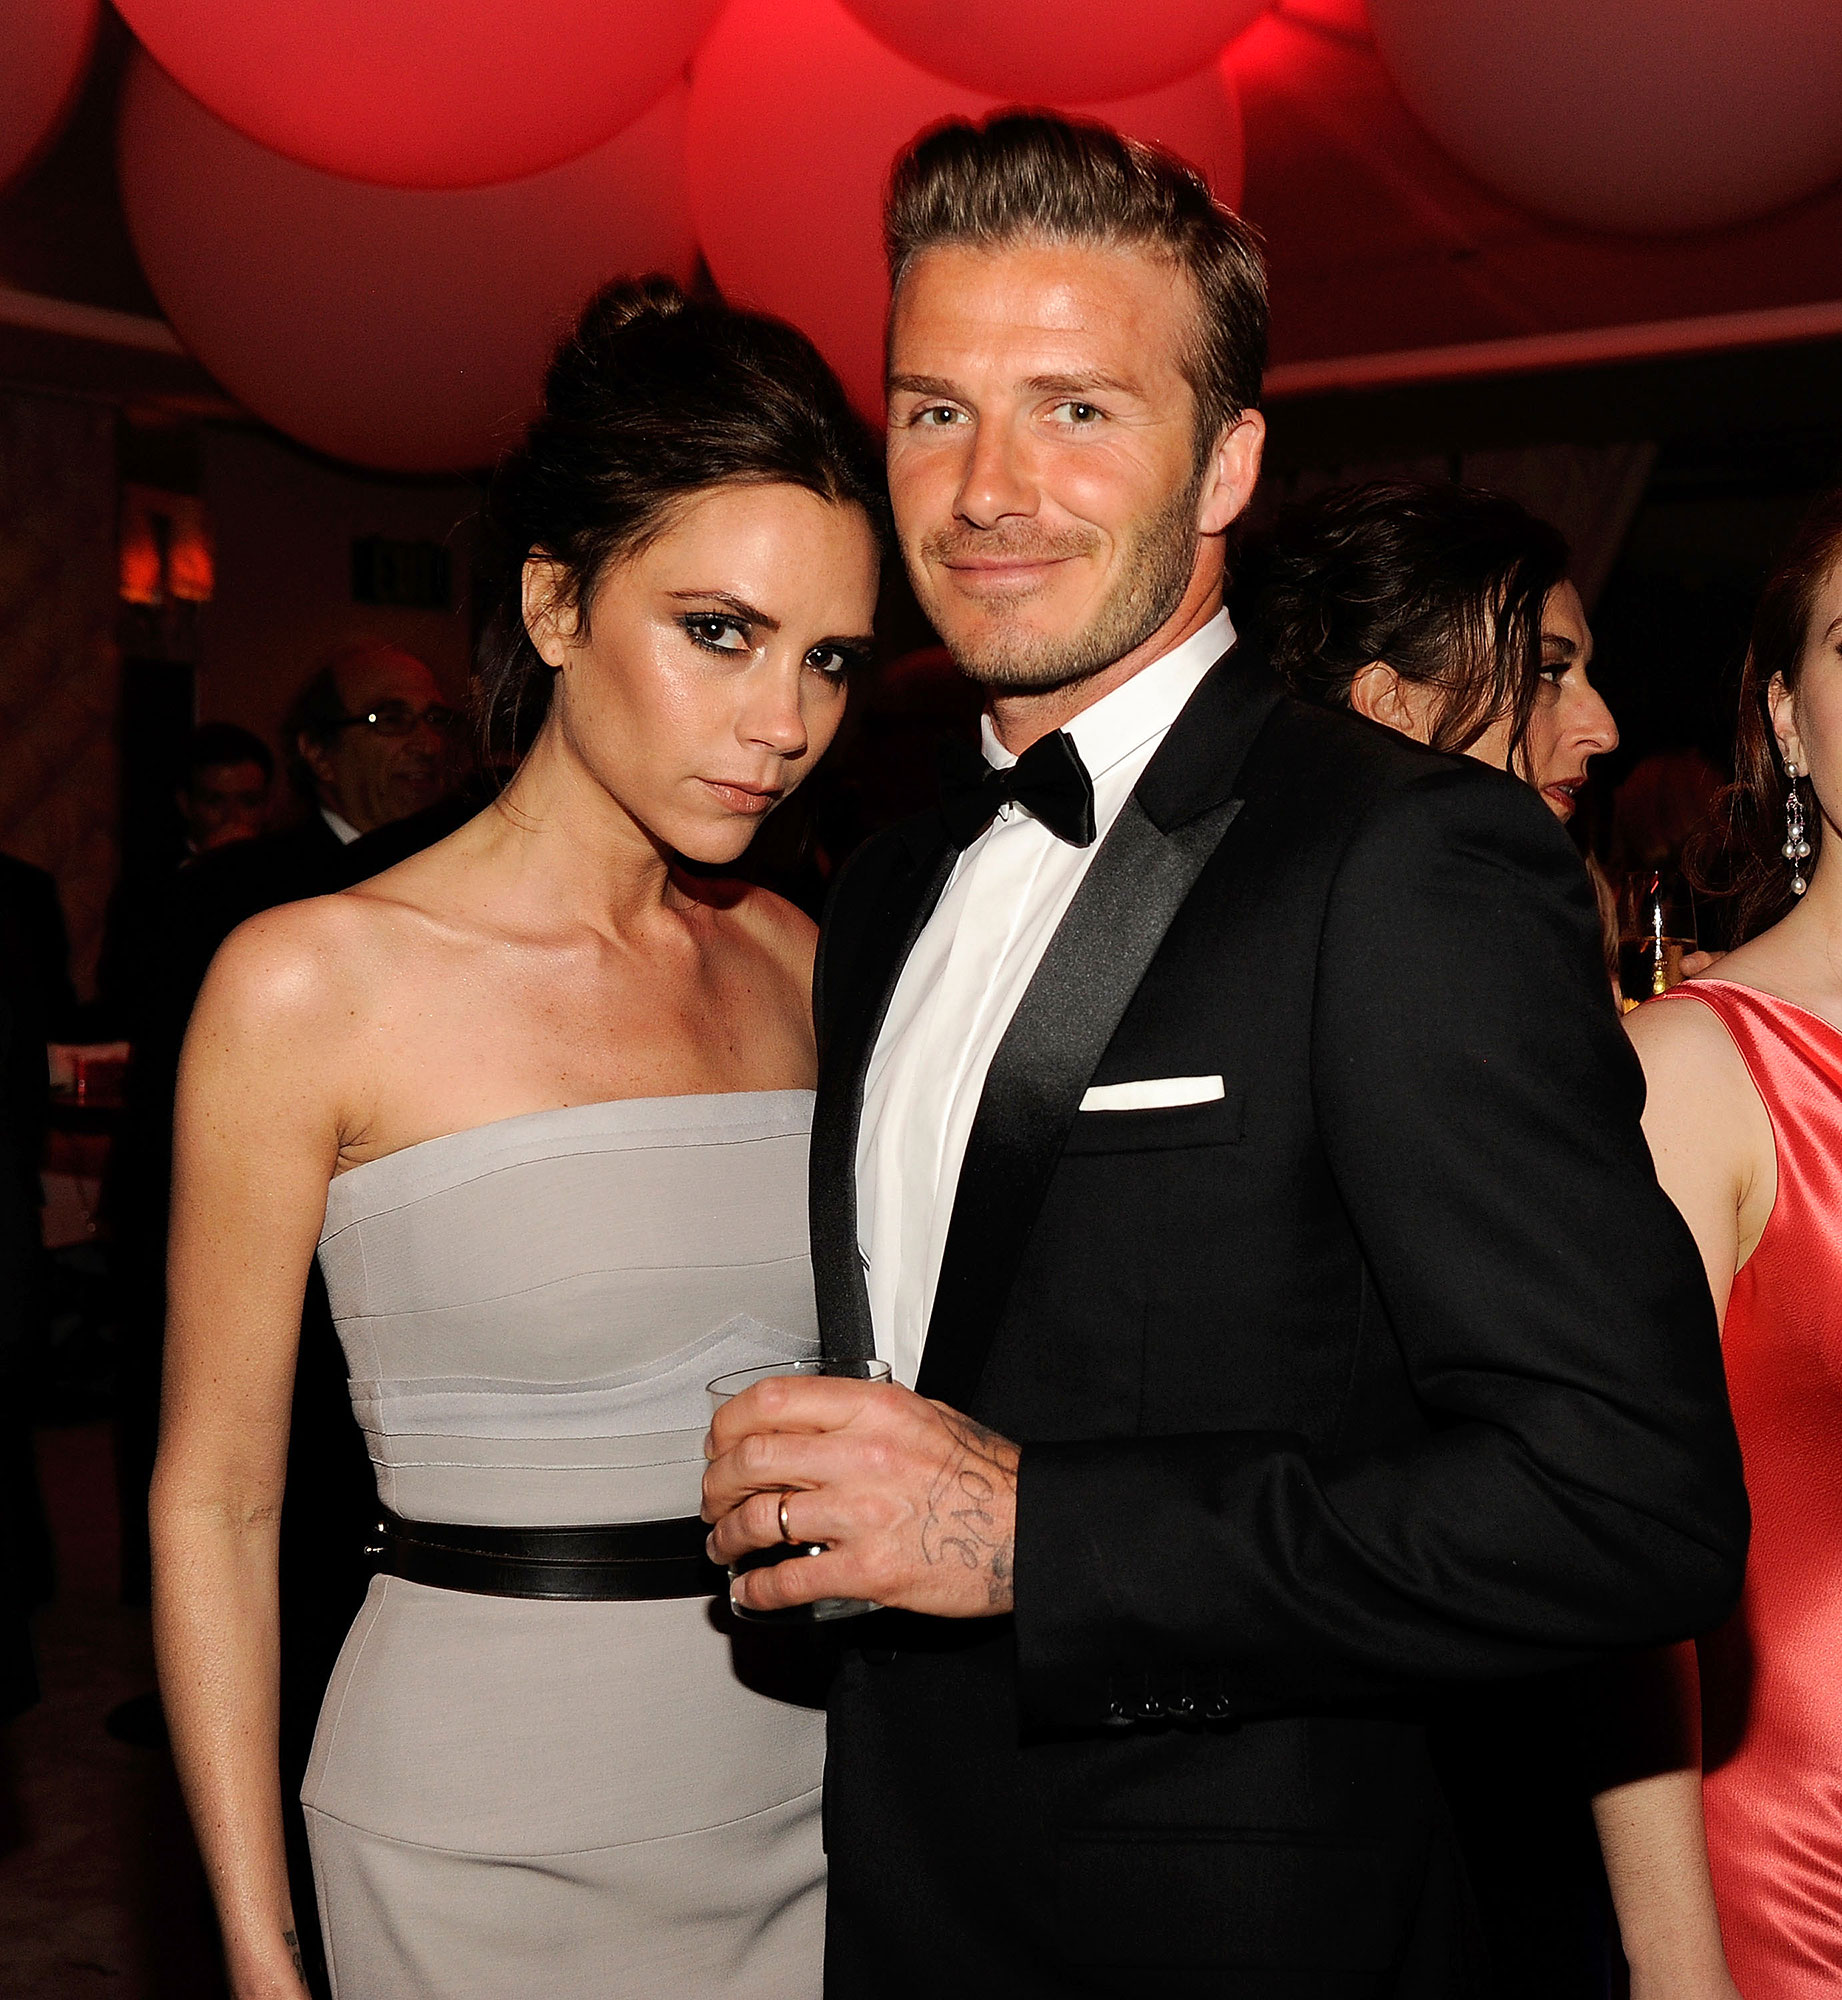 Victoria and David Beckham timeline gallery - WEST HOLLYWOOD, CA – FEBRUARY 26: (EXCLUSIVE ACCESS SPECIAL RATES APPLY; NO NORTH AMERICAN ON-AIR BROADCAST UNTIL MARCH 1, 2012) Victoria Beckham and David Beckham attend the 2012 Vanity Fair Oscar Party Hosted By Graydon Carter at Sunset Tower on February 26, 2012 in West Hollywood, California. (Photo by Kevin Mazur/VF12/WireImage)